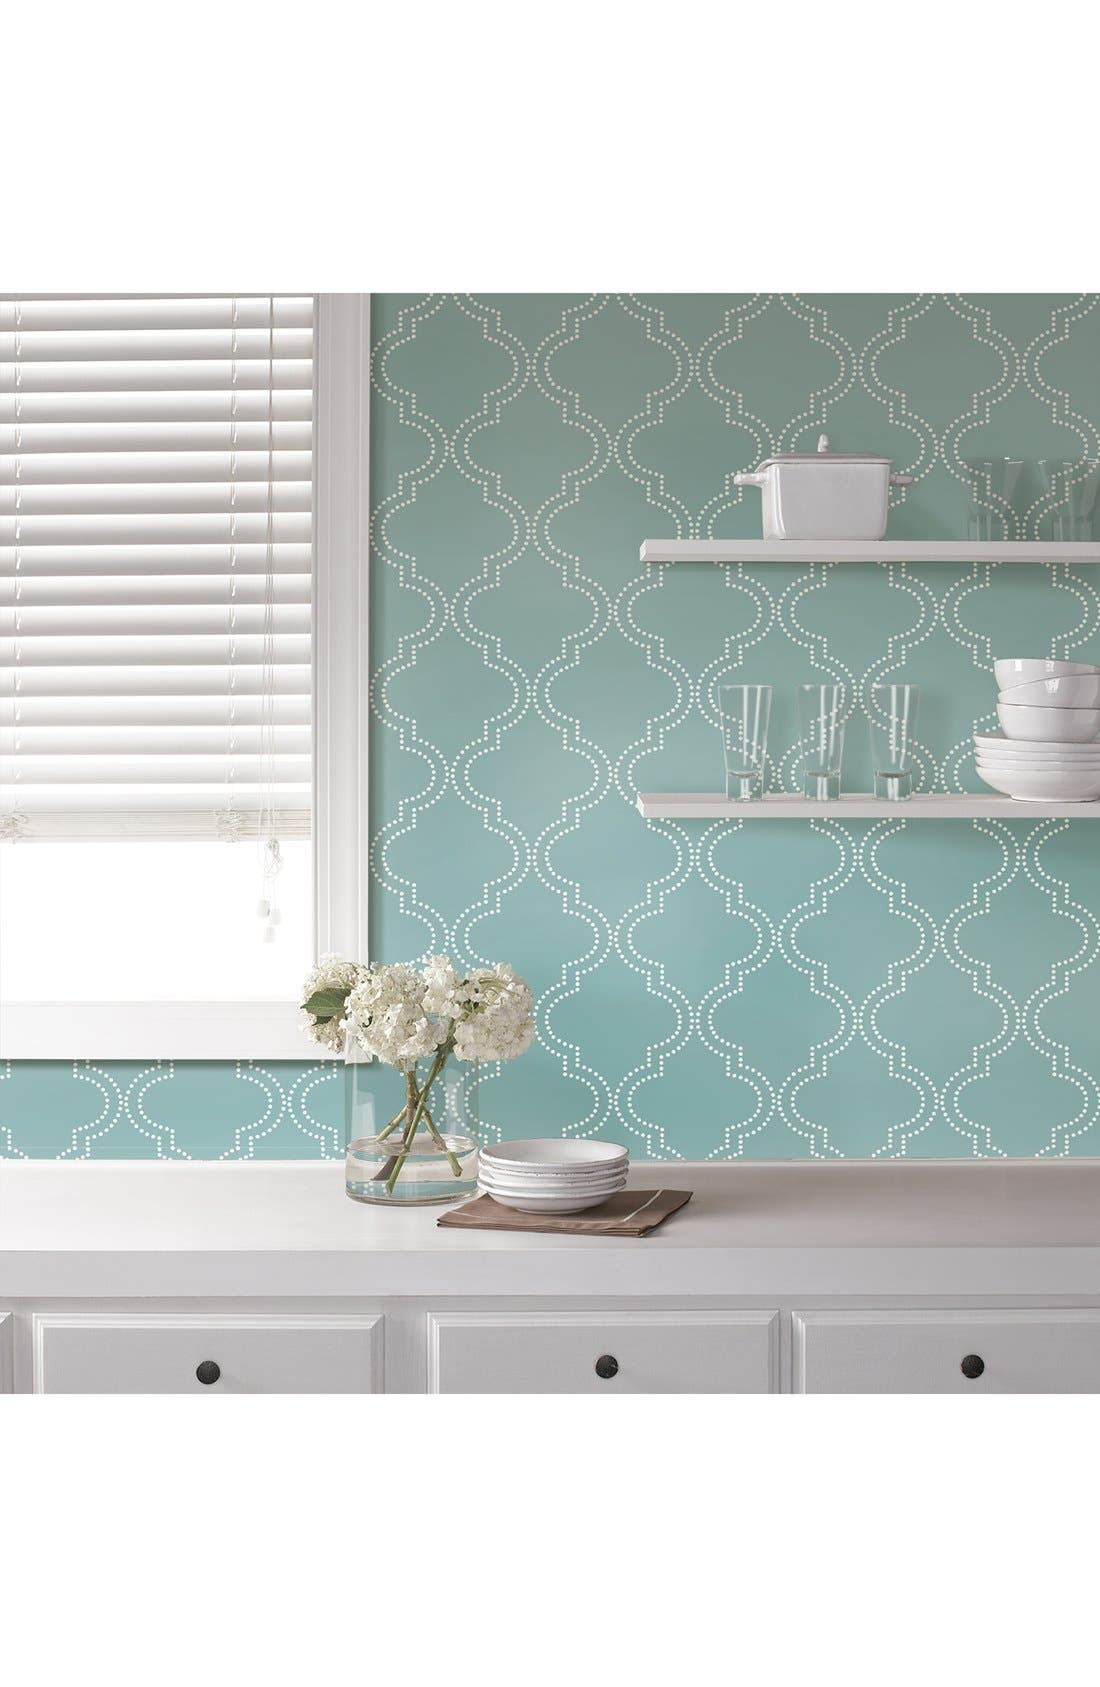 'Quatrefoil'  Peel & Stick Vinyl Wallpaper,                             Alternate thumbnail 4, color,                             401